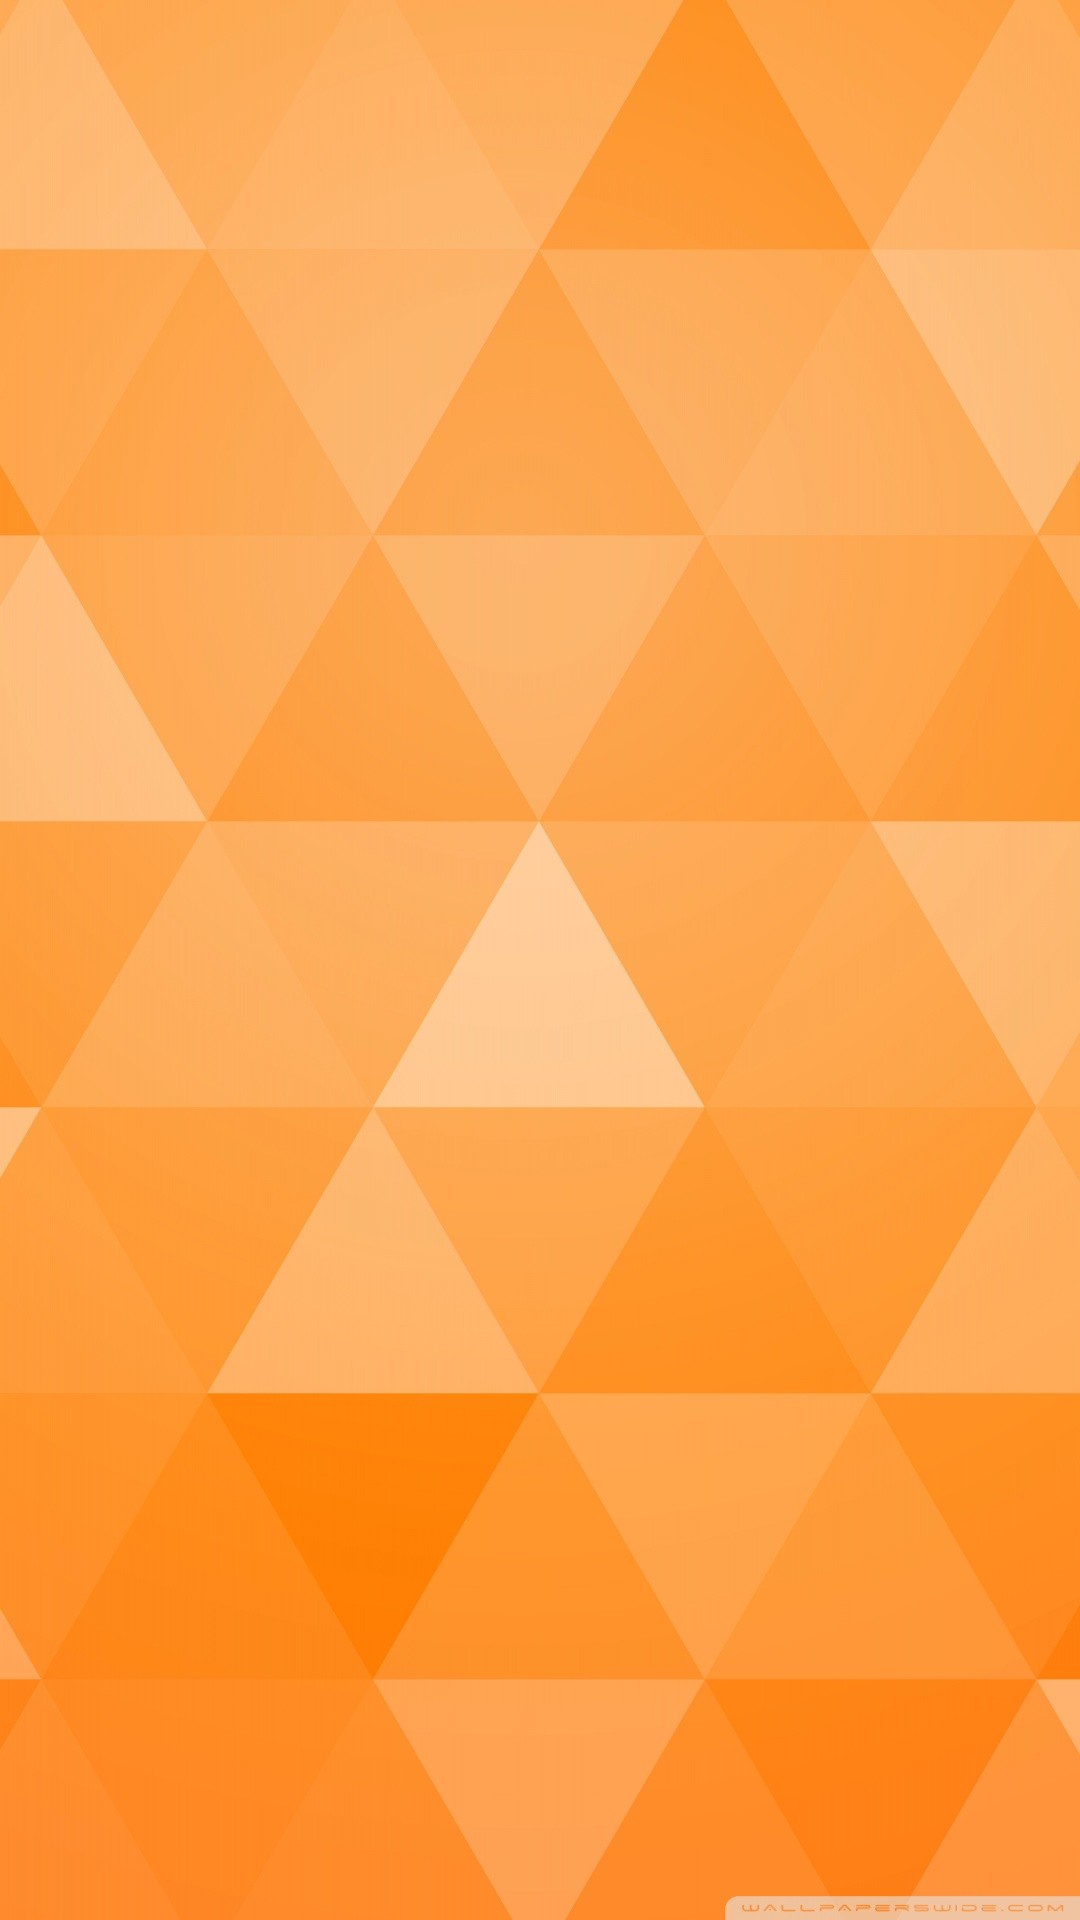 Free Orange Abstract Geometric Triangle phone wallpaper by shalant88